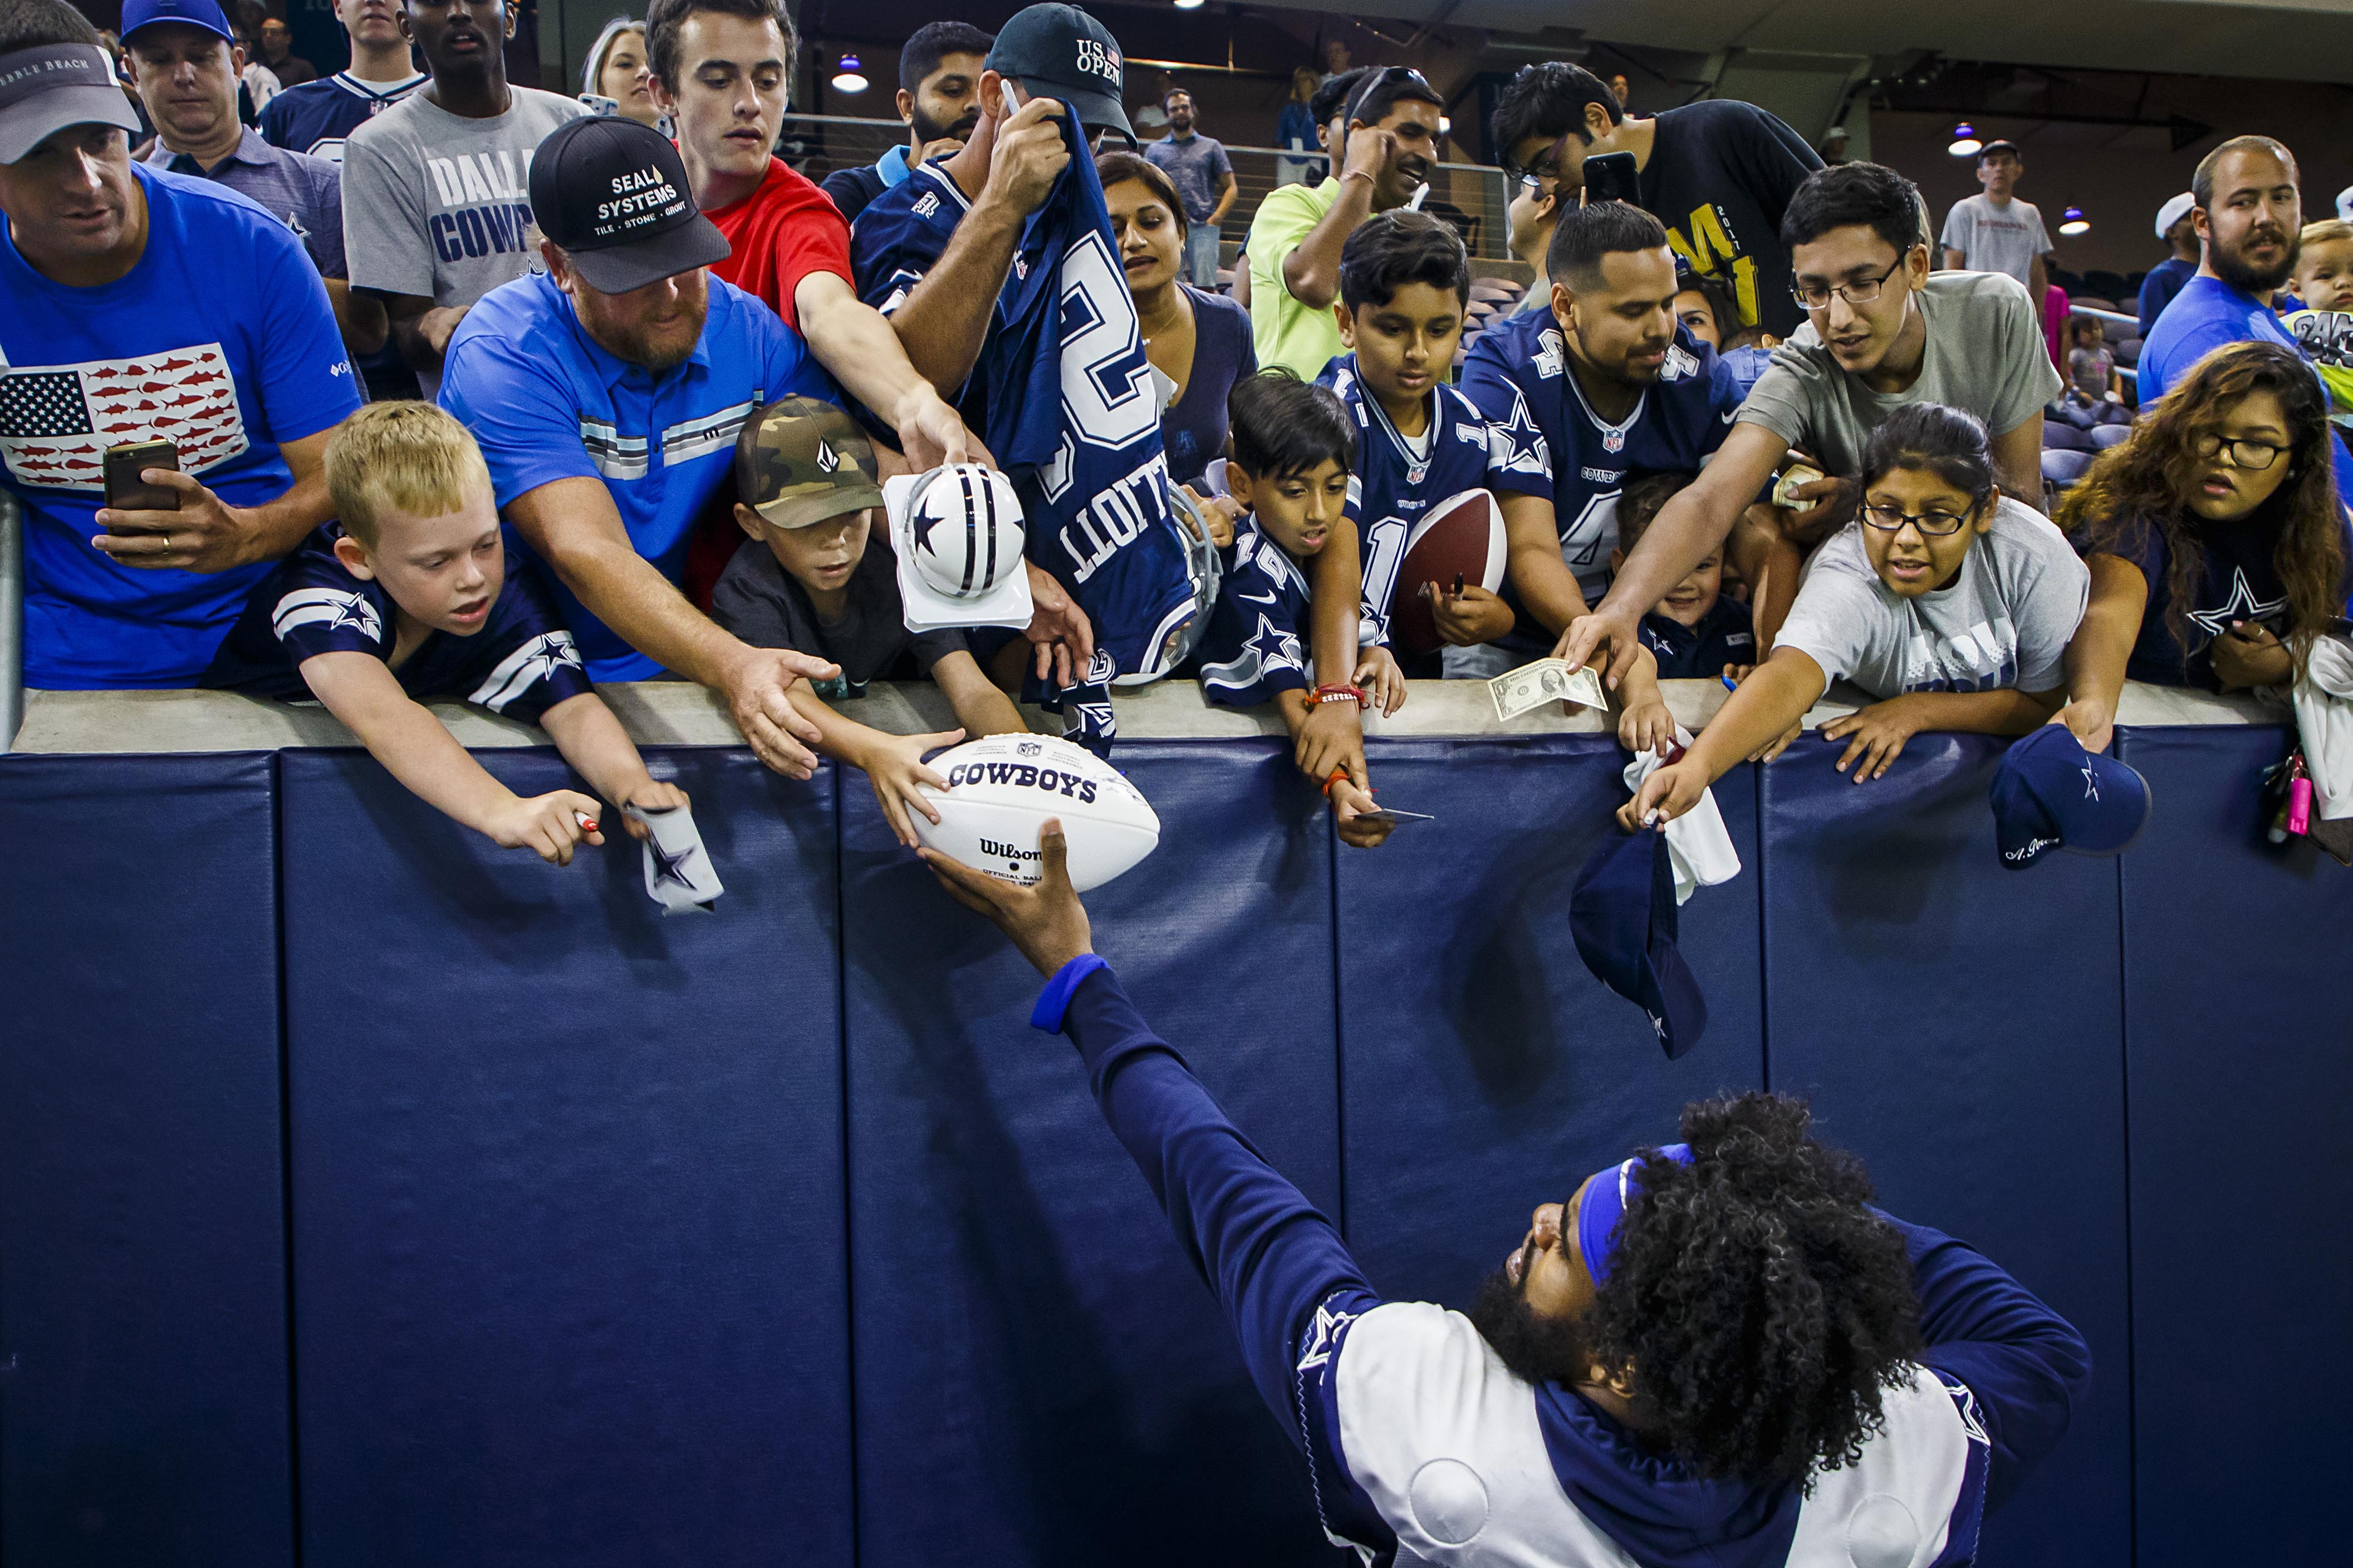 a9cc3a68beb Listen up, rookie D-FW sports fans: Cowboys are No. 1, high school football  rocks, everybody loves Dirk